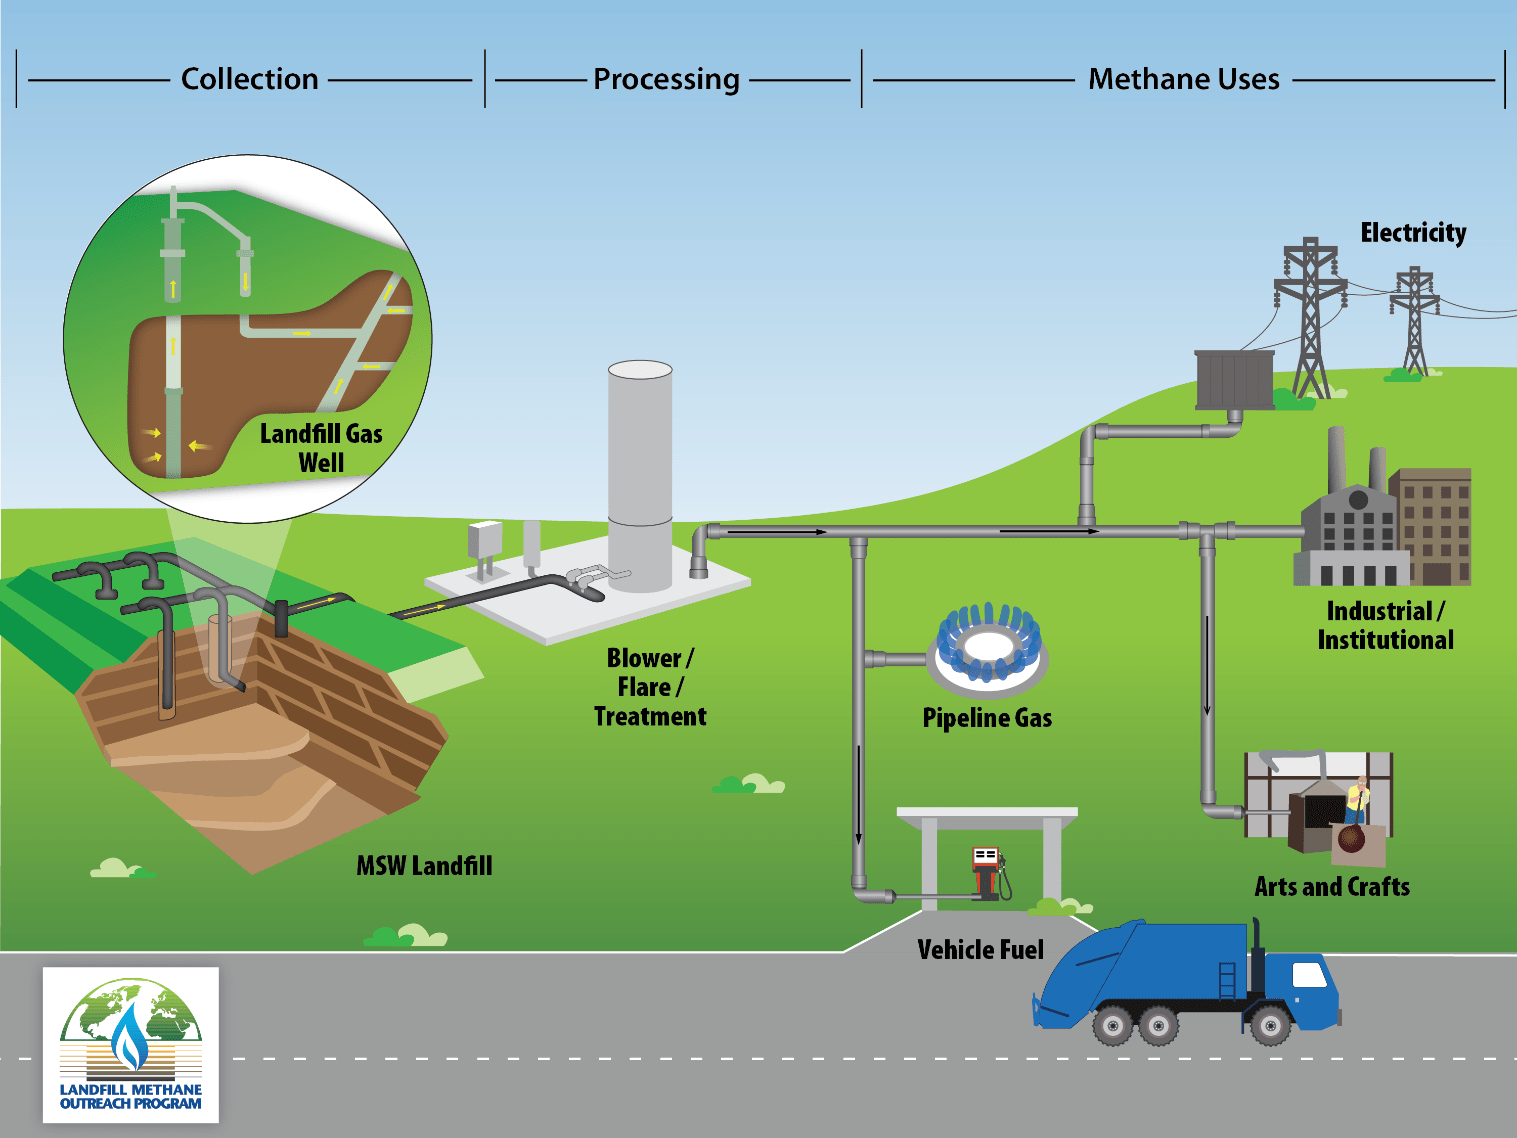 Basic Information About Landfill Gas